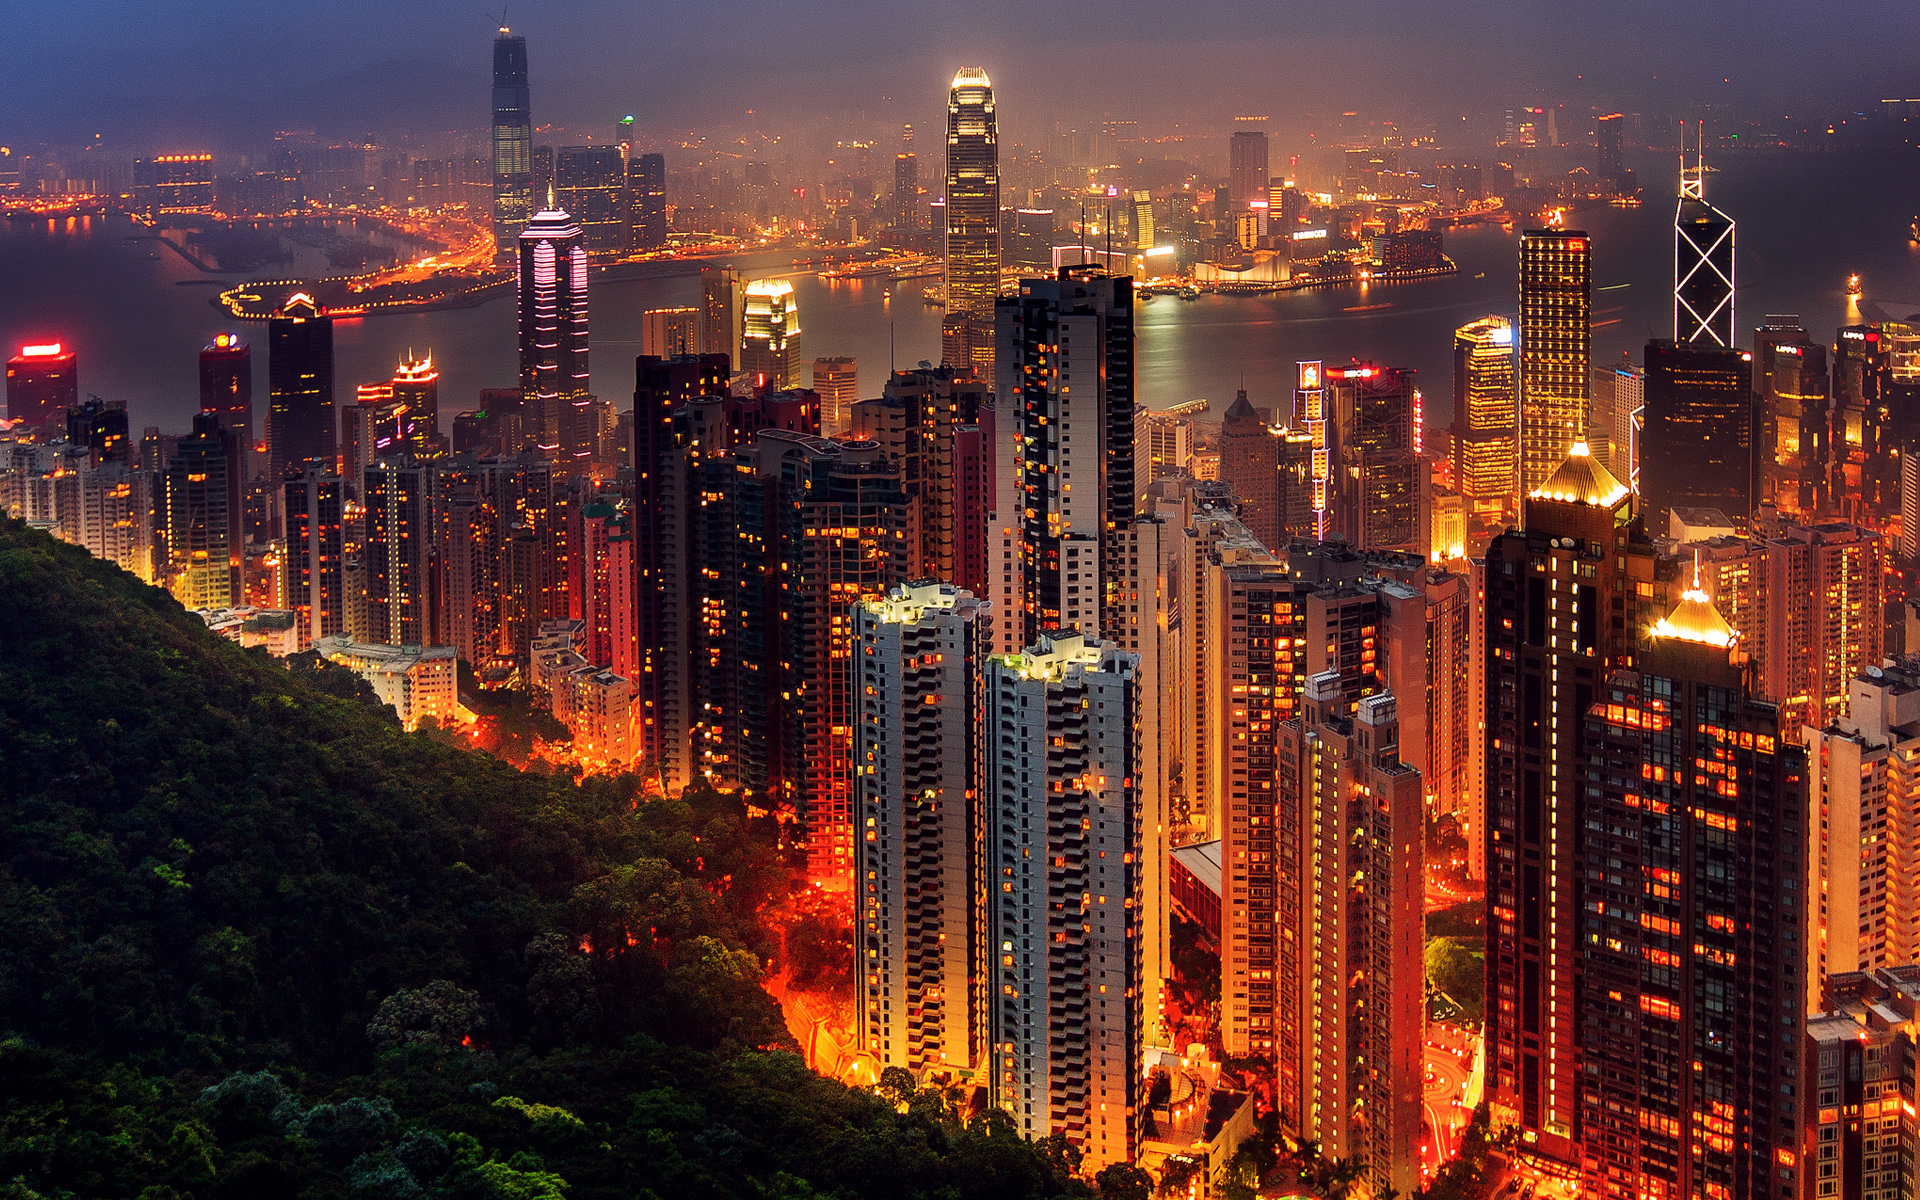 4k-ultra-hd-wallpaper-Hong-Kong-unabuenaidea.es (3)